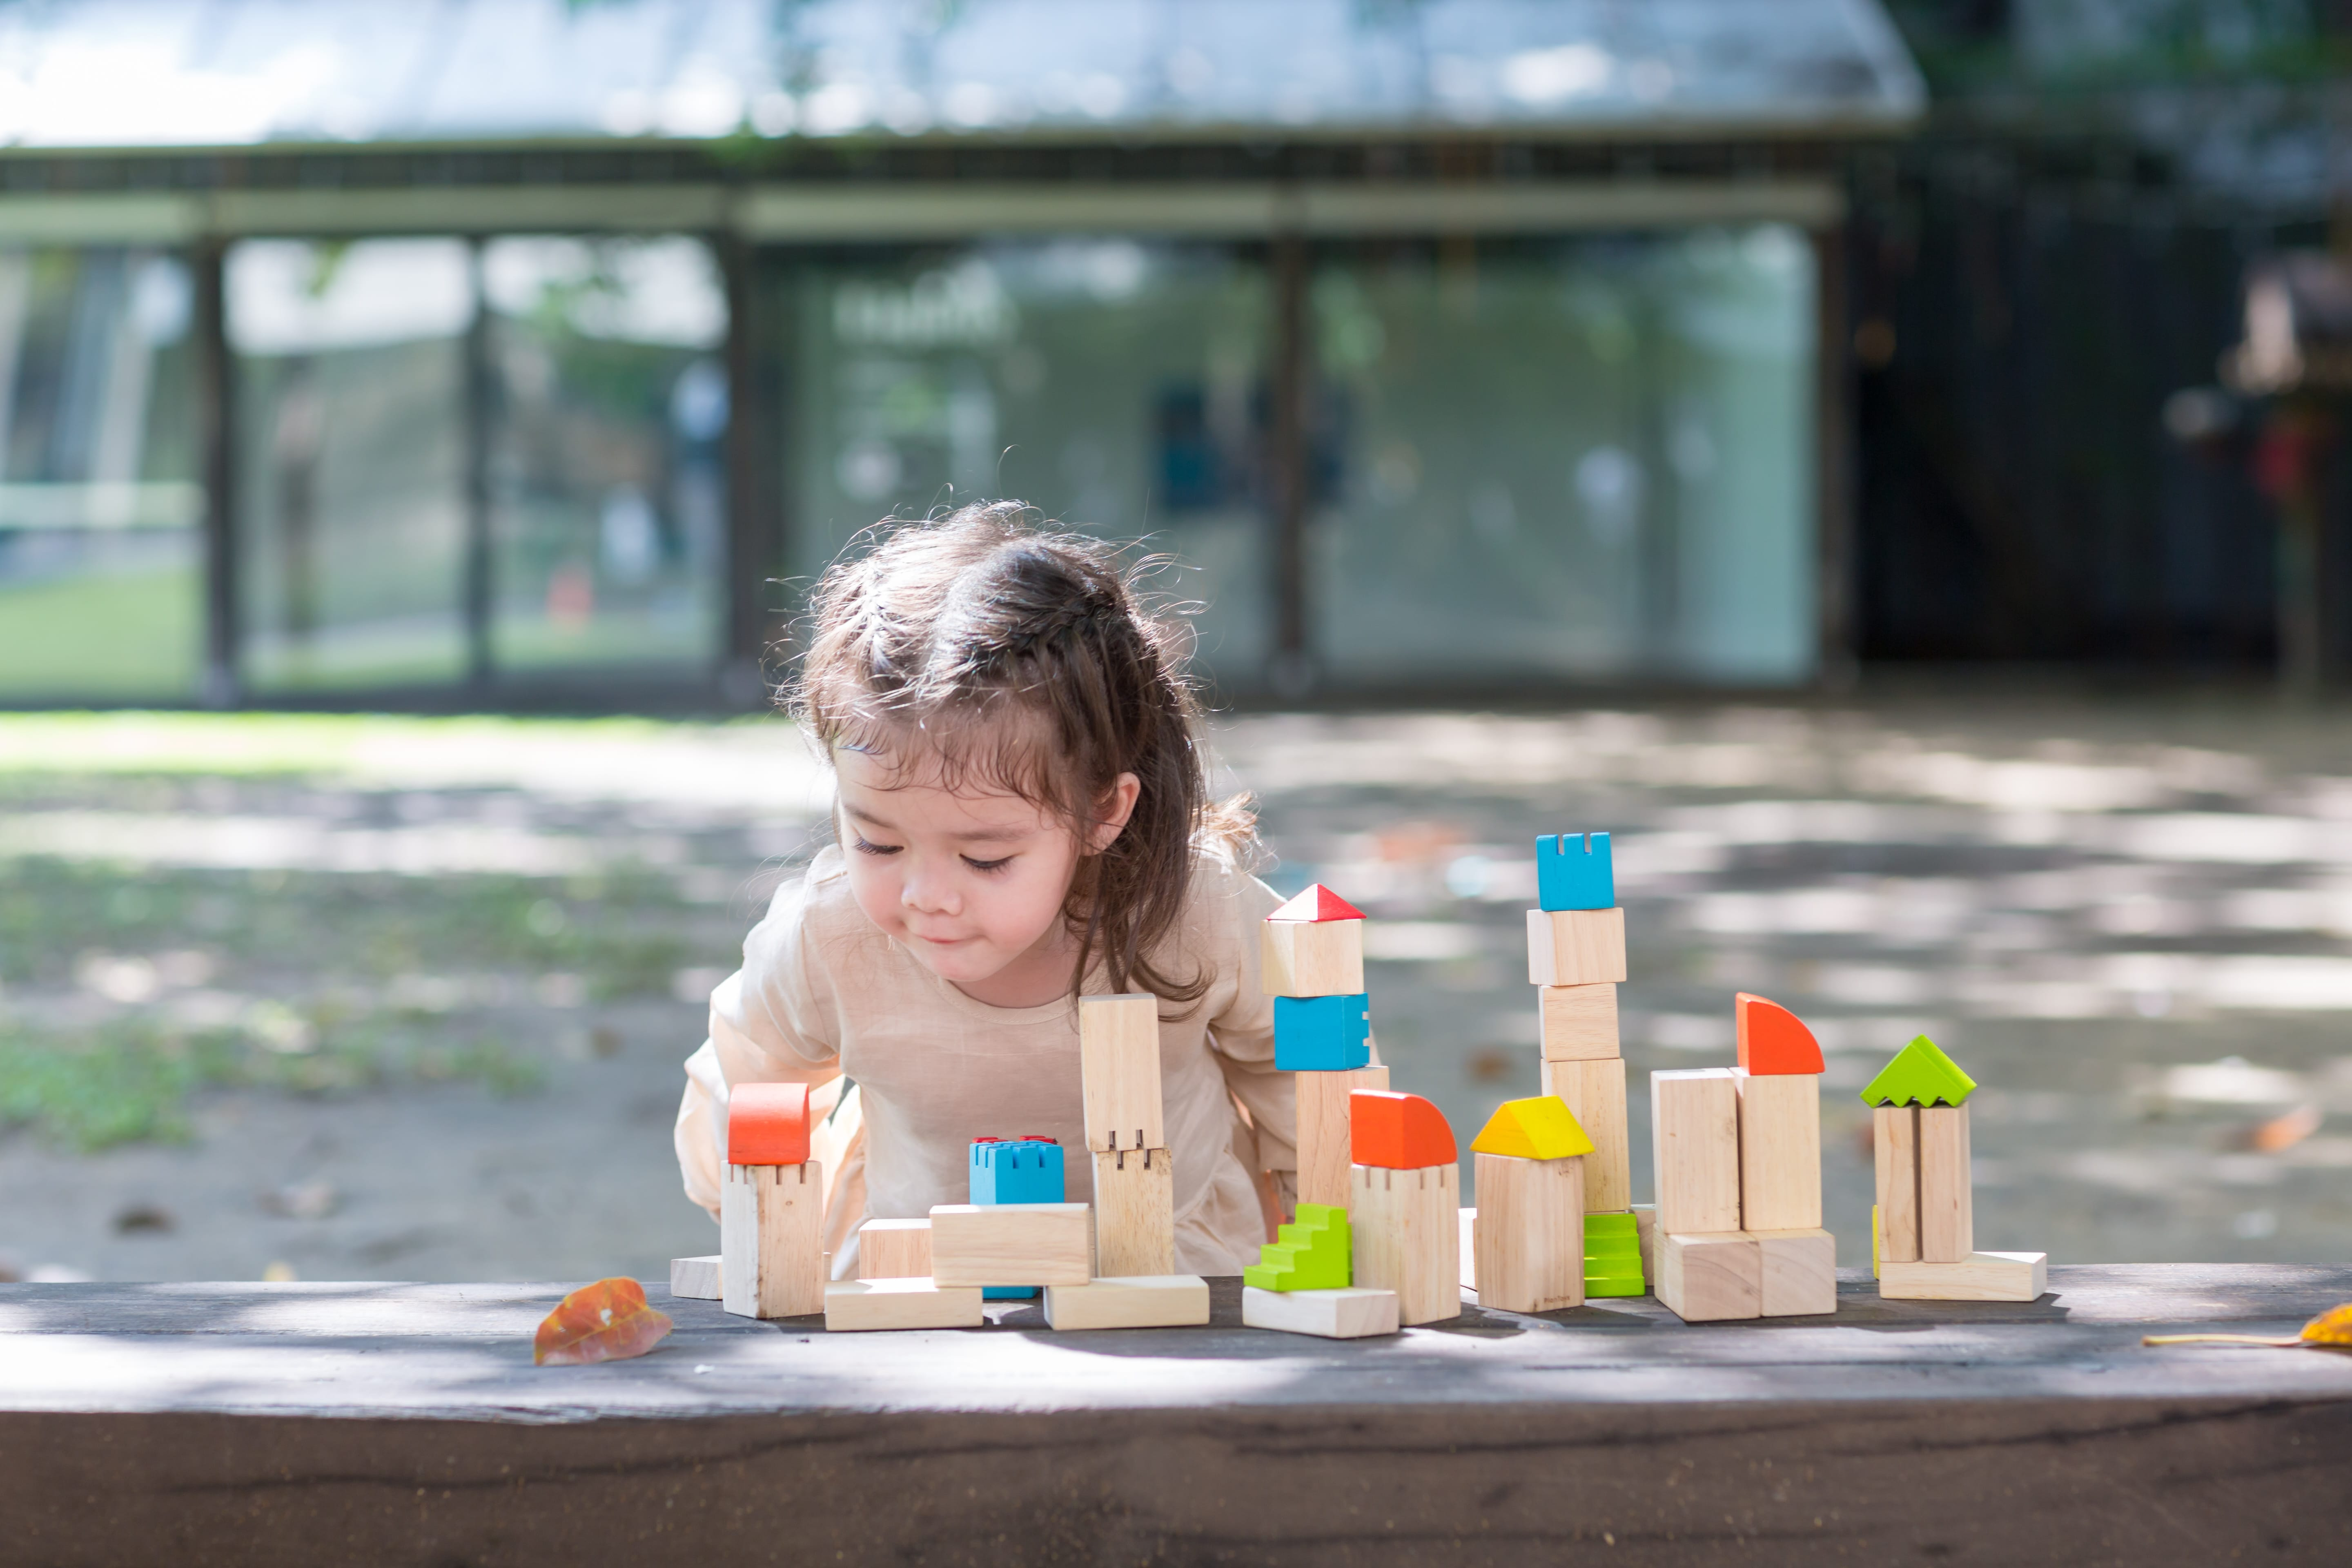 5527_PlanToys_CREATIVE_BLOCKS_Blocks_and_Construction_Mathematical_Creative_Fine_Motor_Language_and_Communications_18m_Wooden_toys_Education_toys_Safety_Toys_Non-toxic_2.jpg